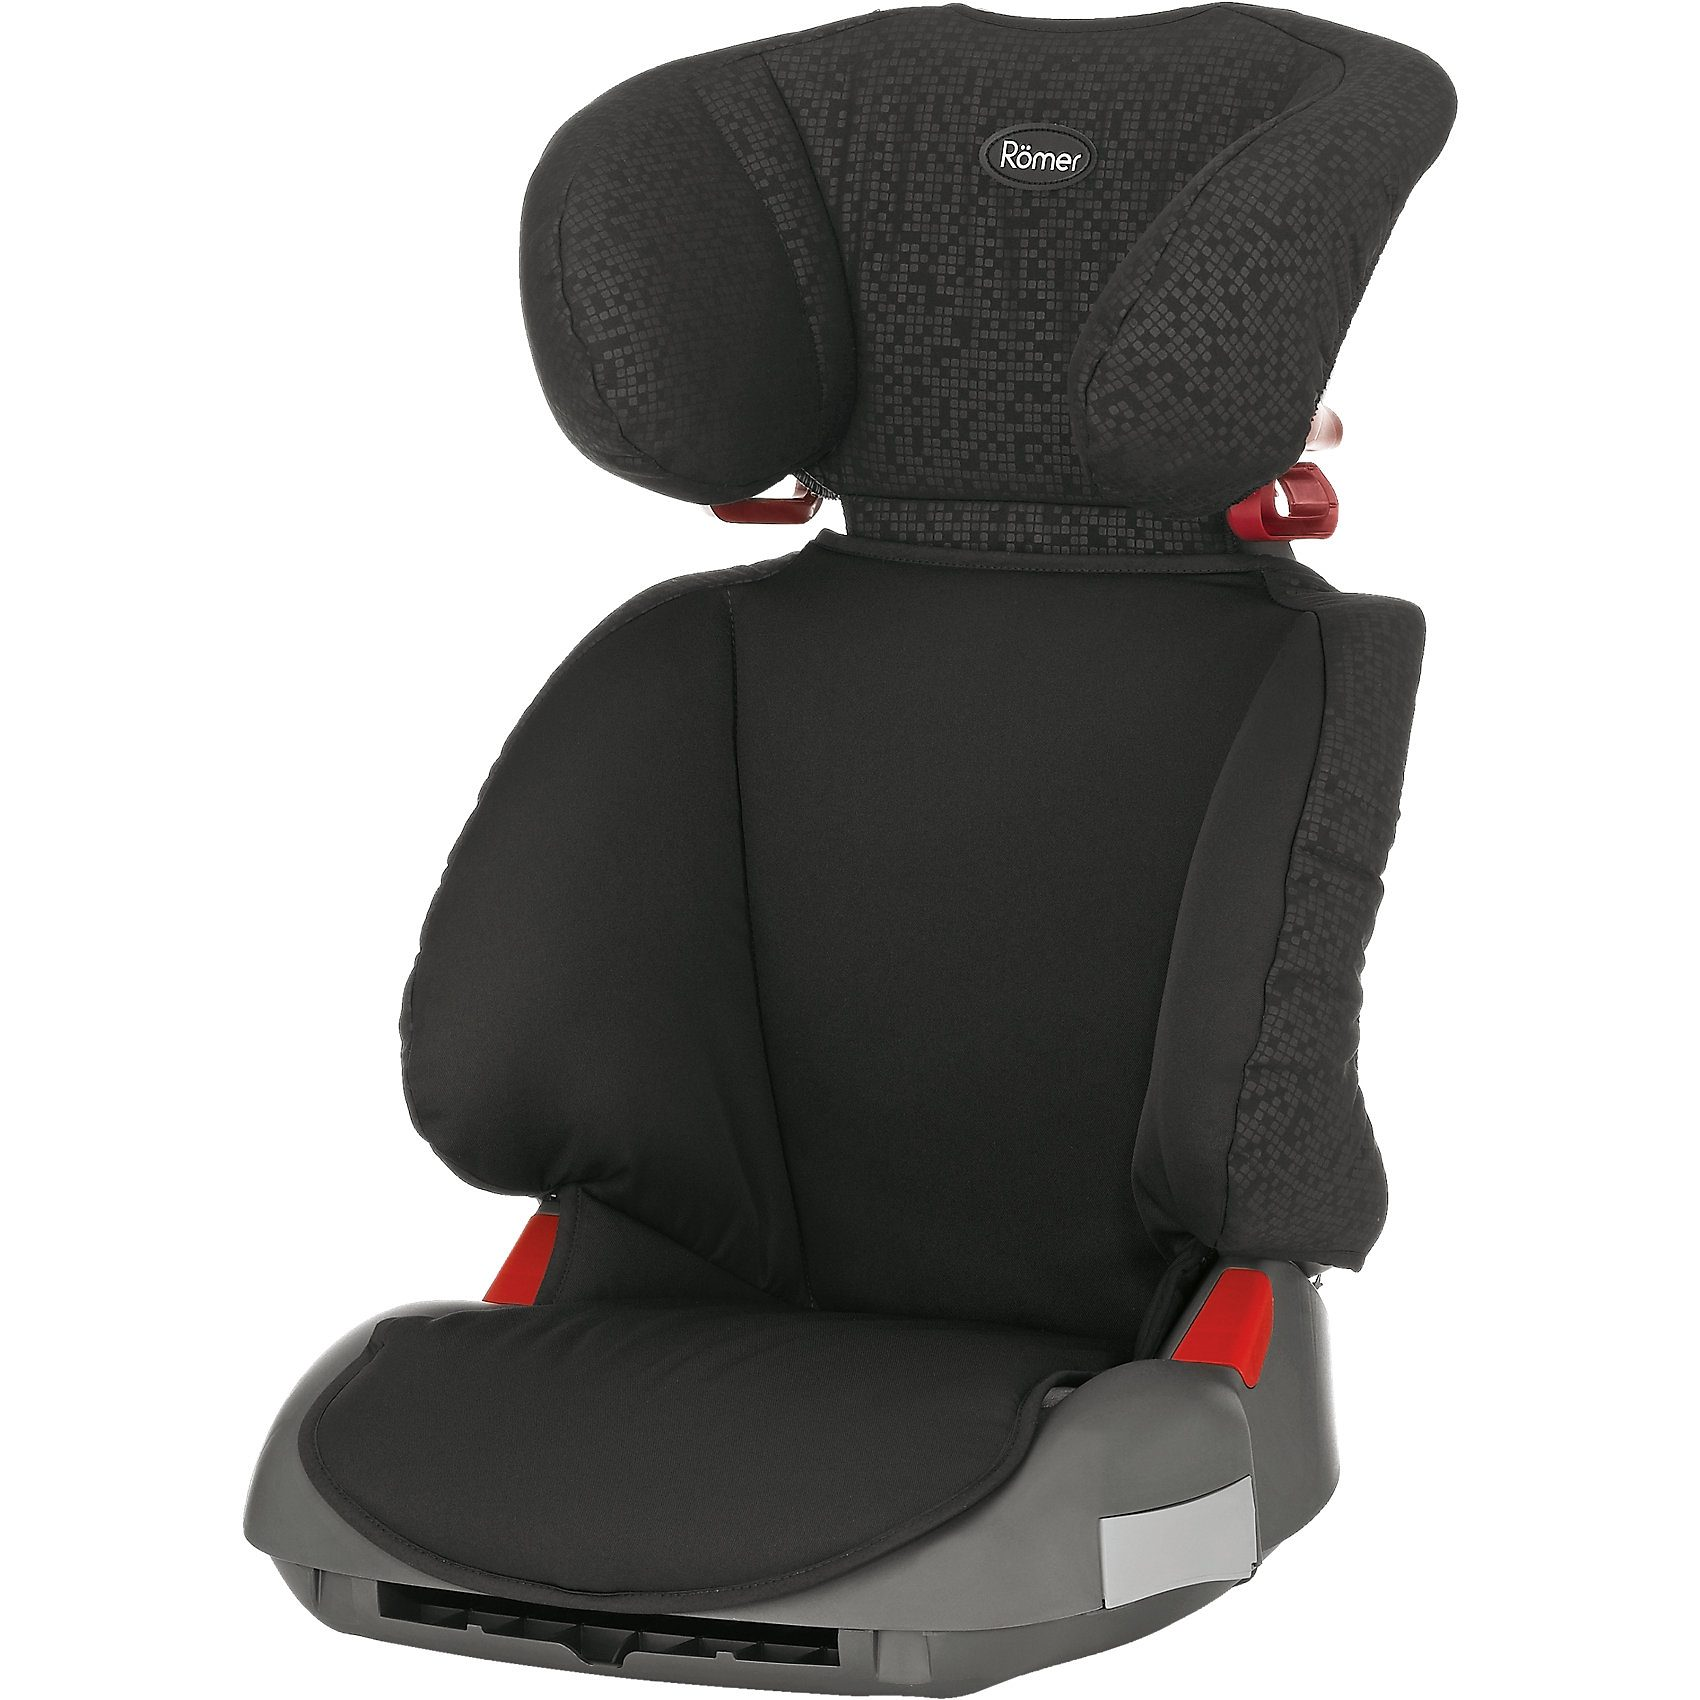 Britax Römer Auto-Kindersitz Adventure, black, 2016